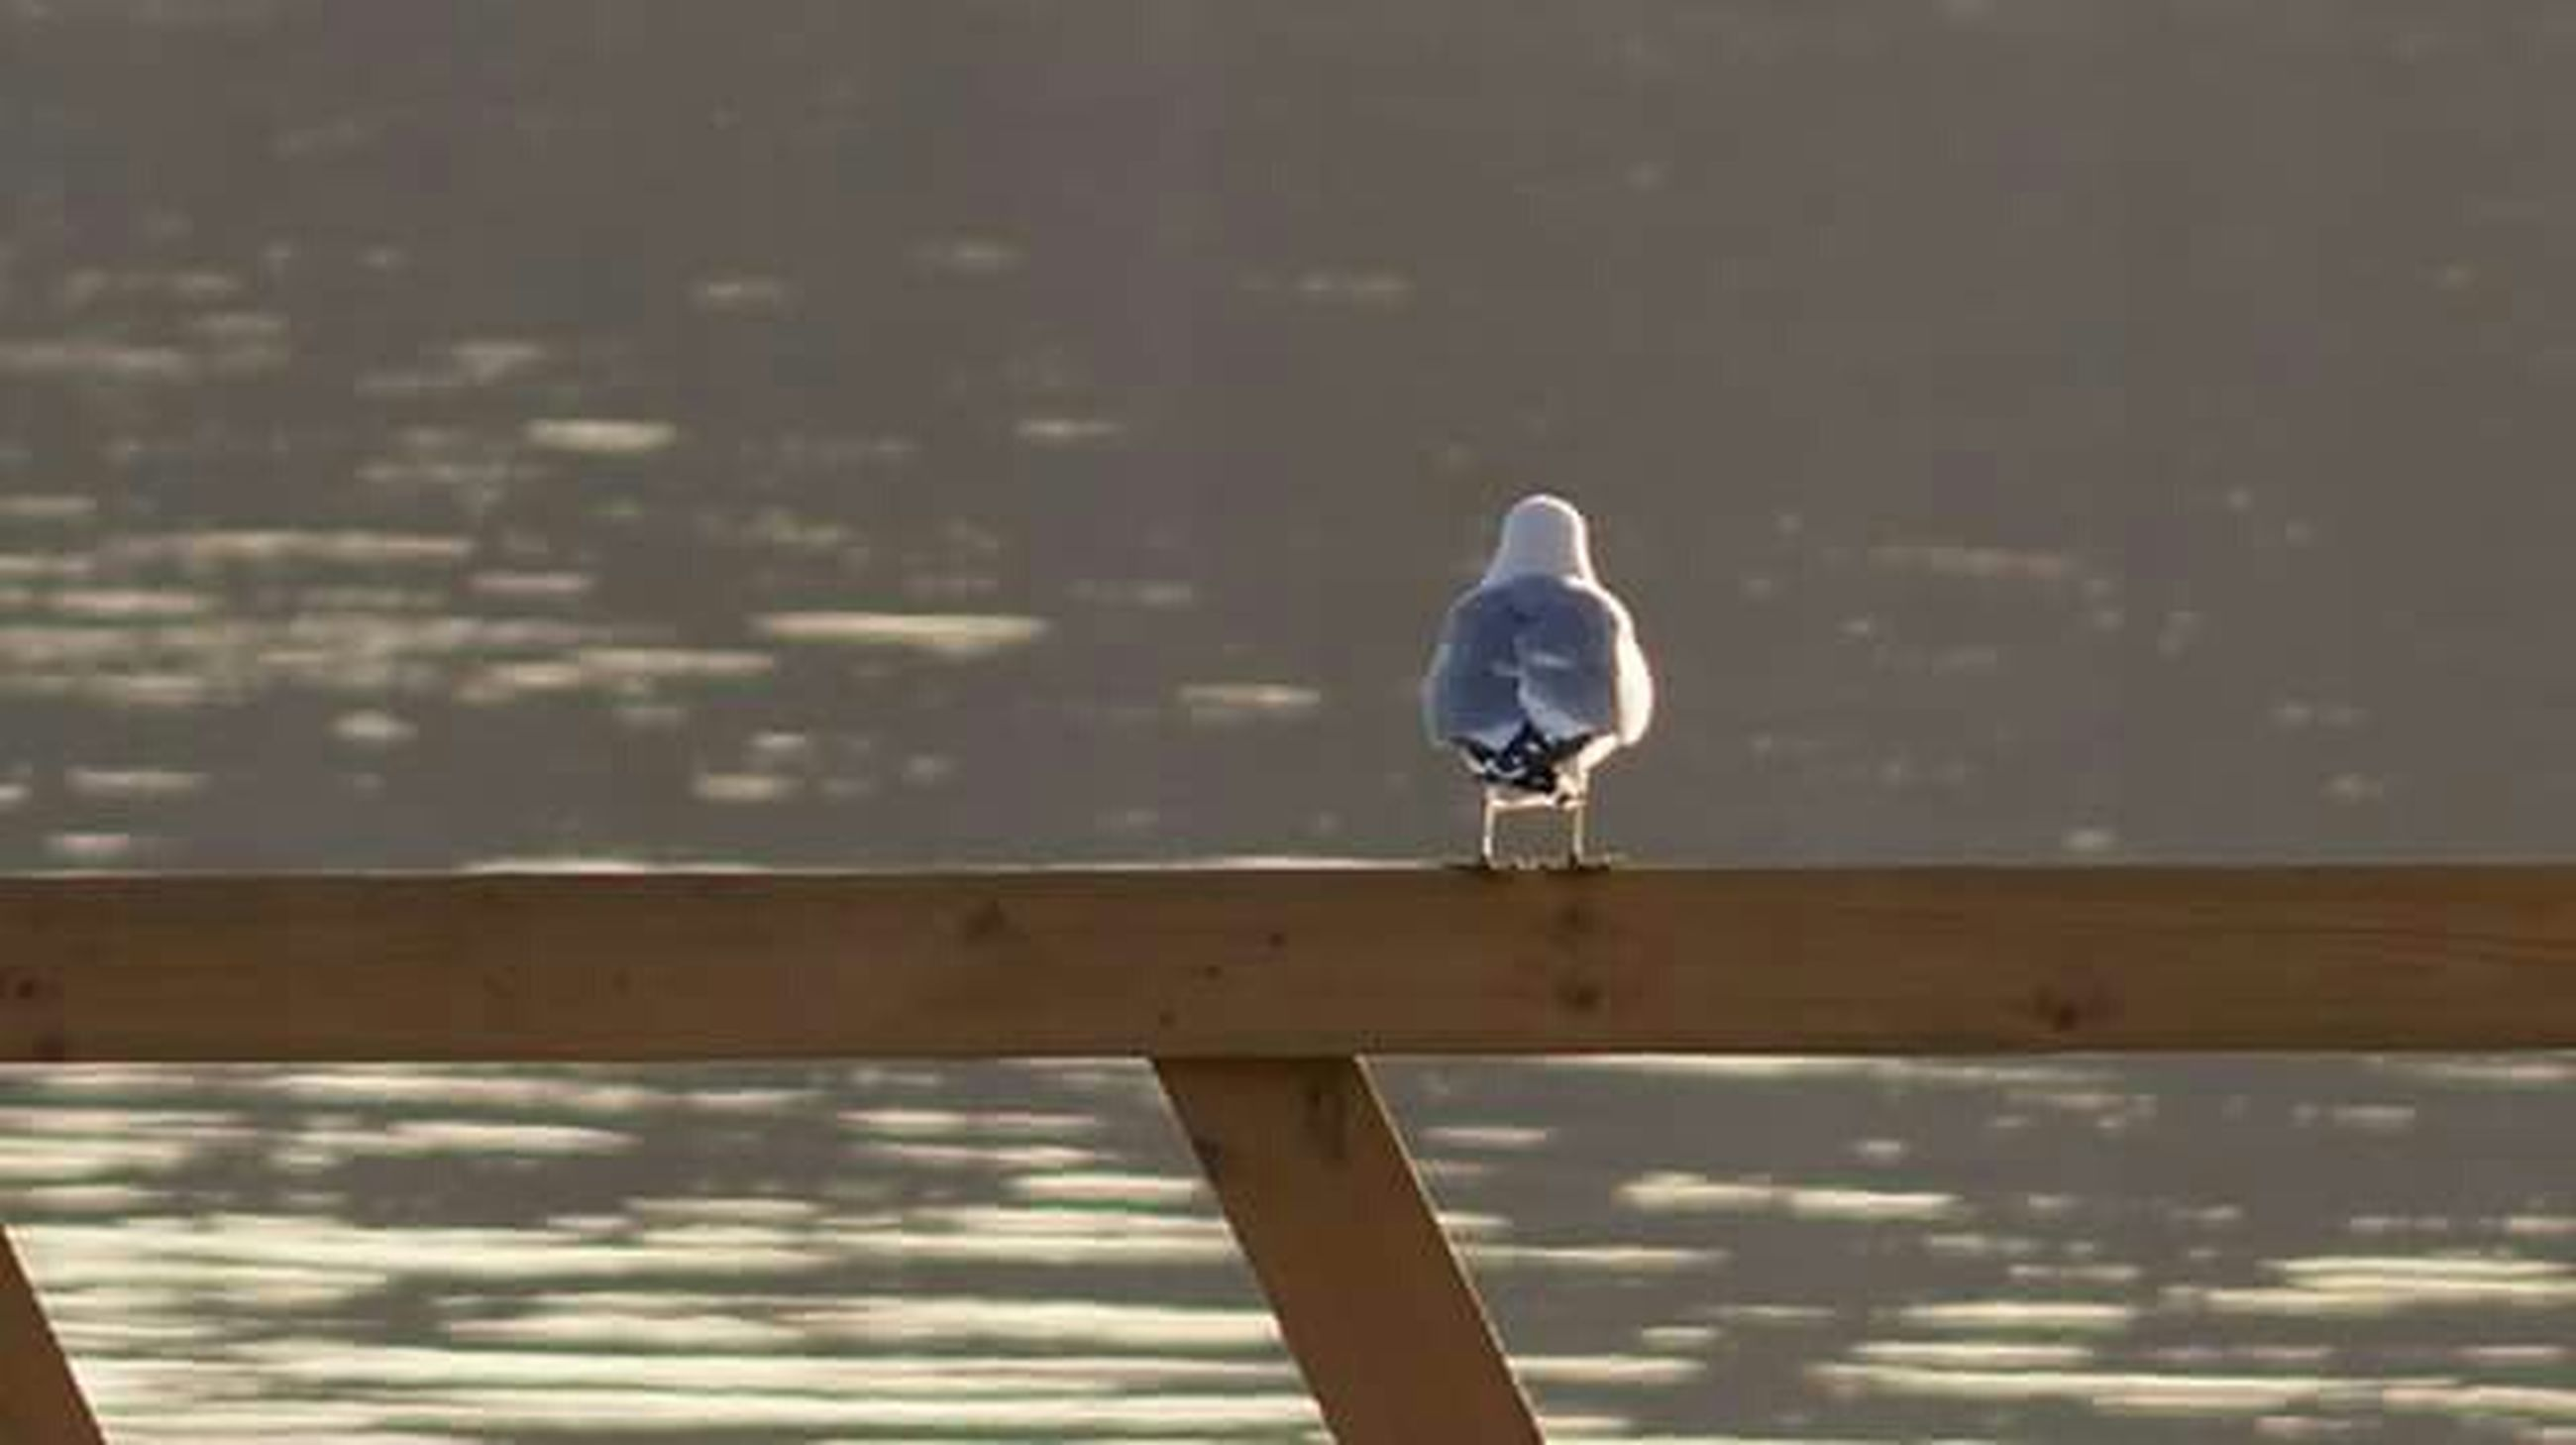 bird, one animal, animal themes, animals in the wild, perching, wildlife, water, focus on foreground, railing, full length, seagull, wood - material, day, side view, nature, outdoors, close-up, rear view, no people, beak